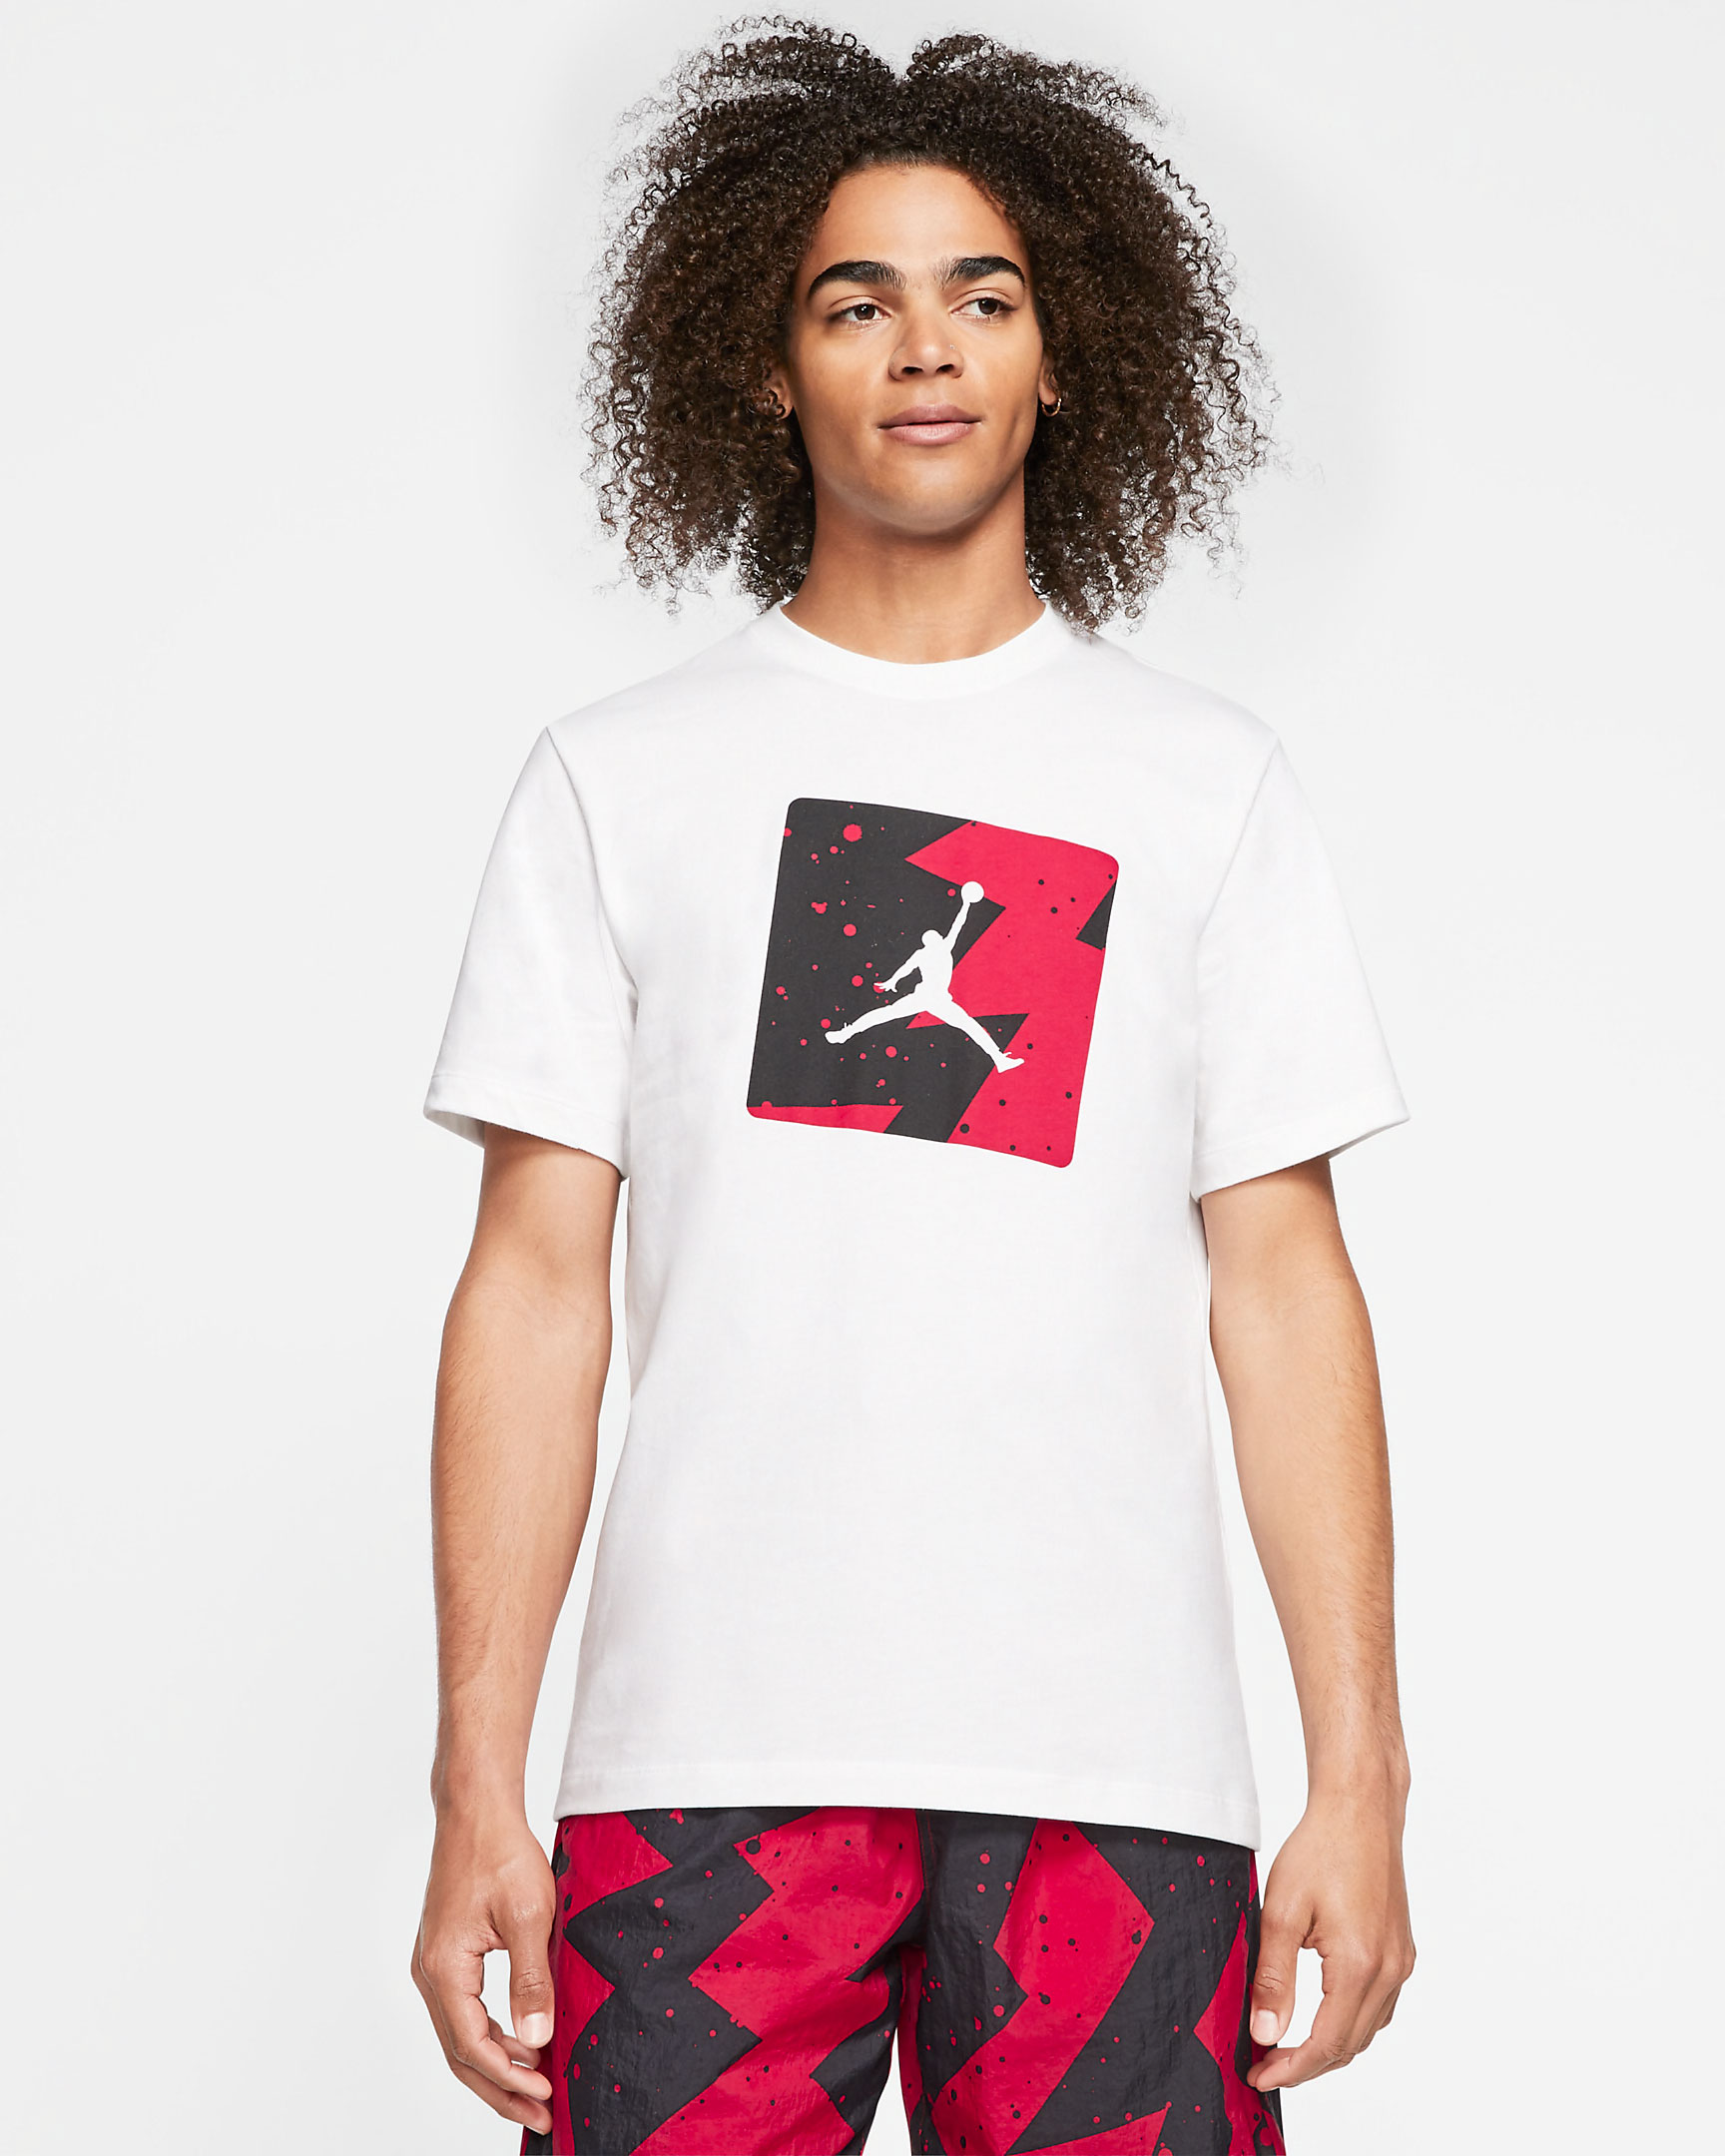 jordan-5-fire-red-2020-poolside-shirt-3